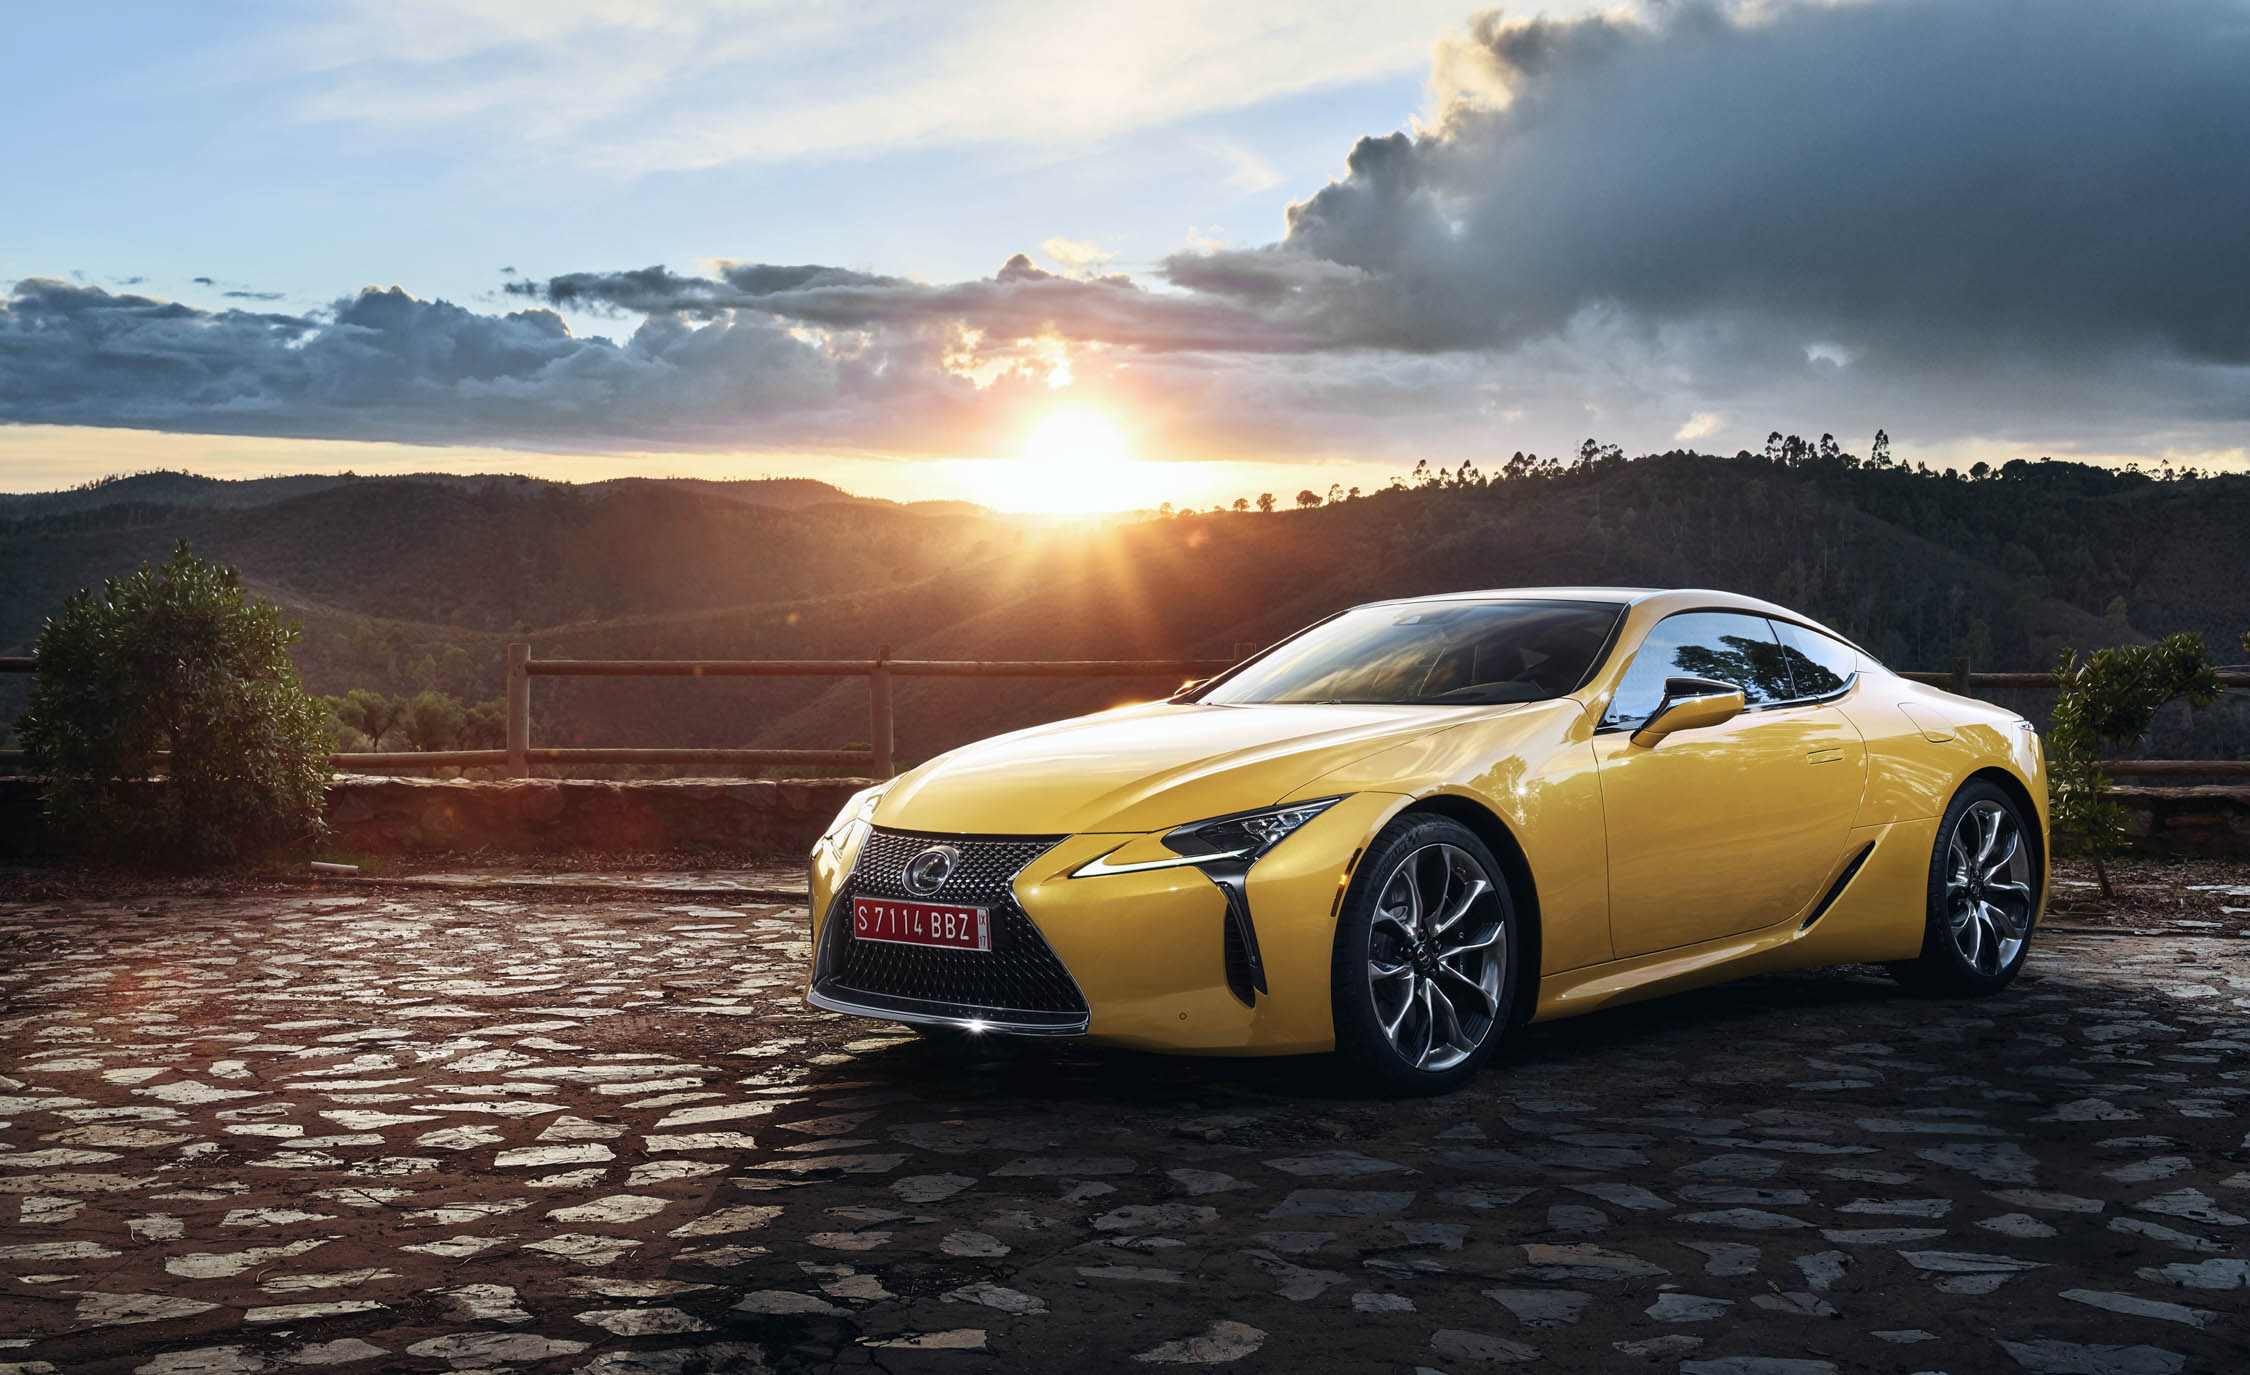 New 2018 Lexus Lc500 Exterior (View 82 of 84)